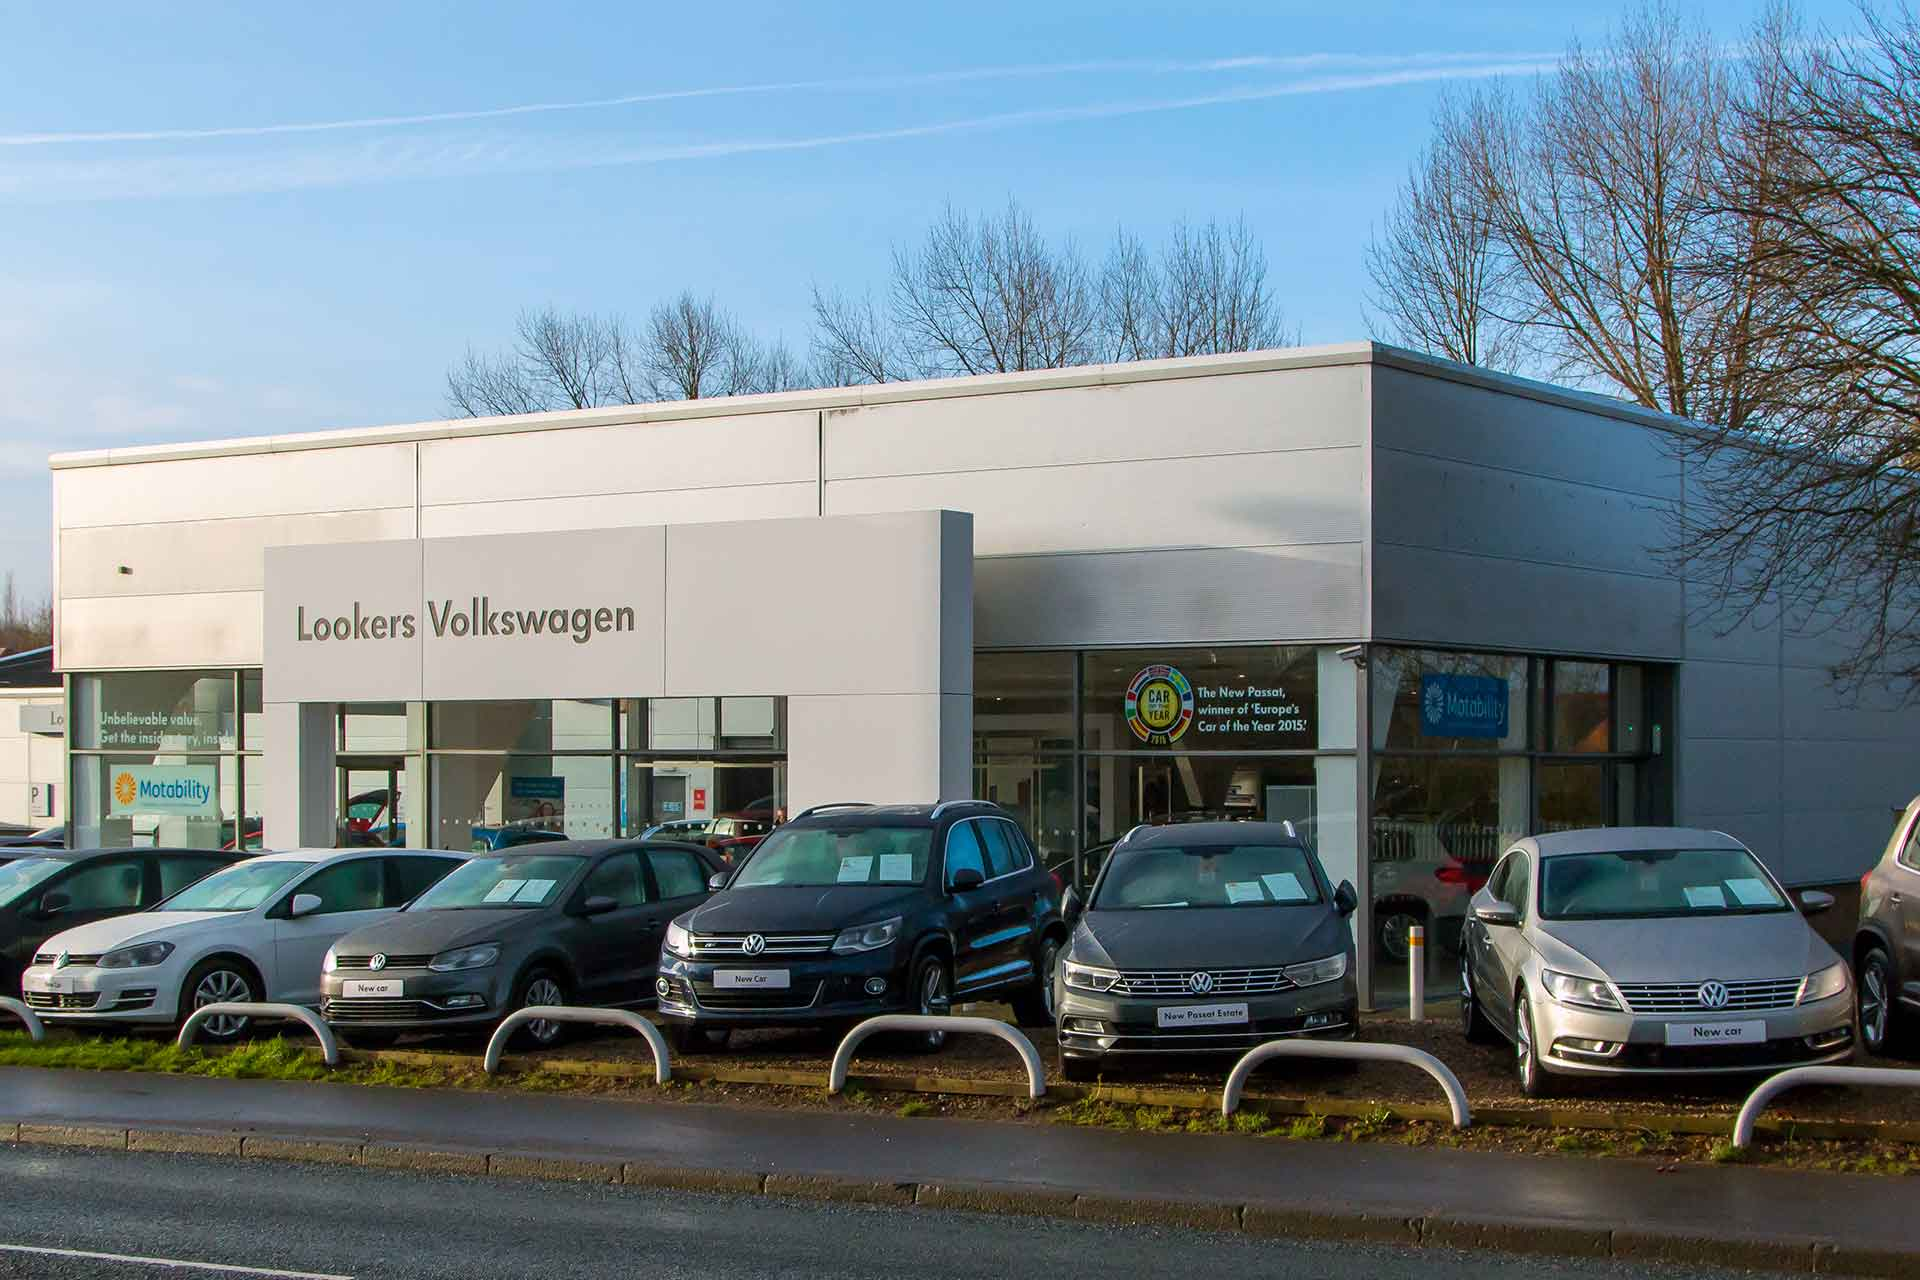 Vw Lookers >> Retail And Offices A S Crocker Plasterers Limited